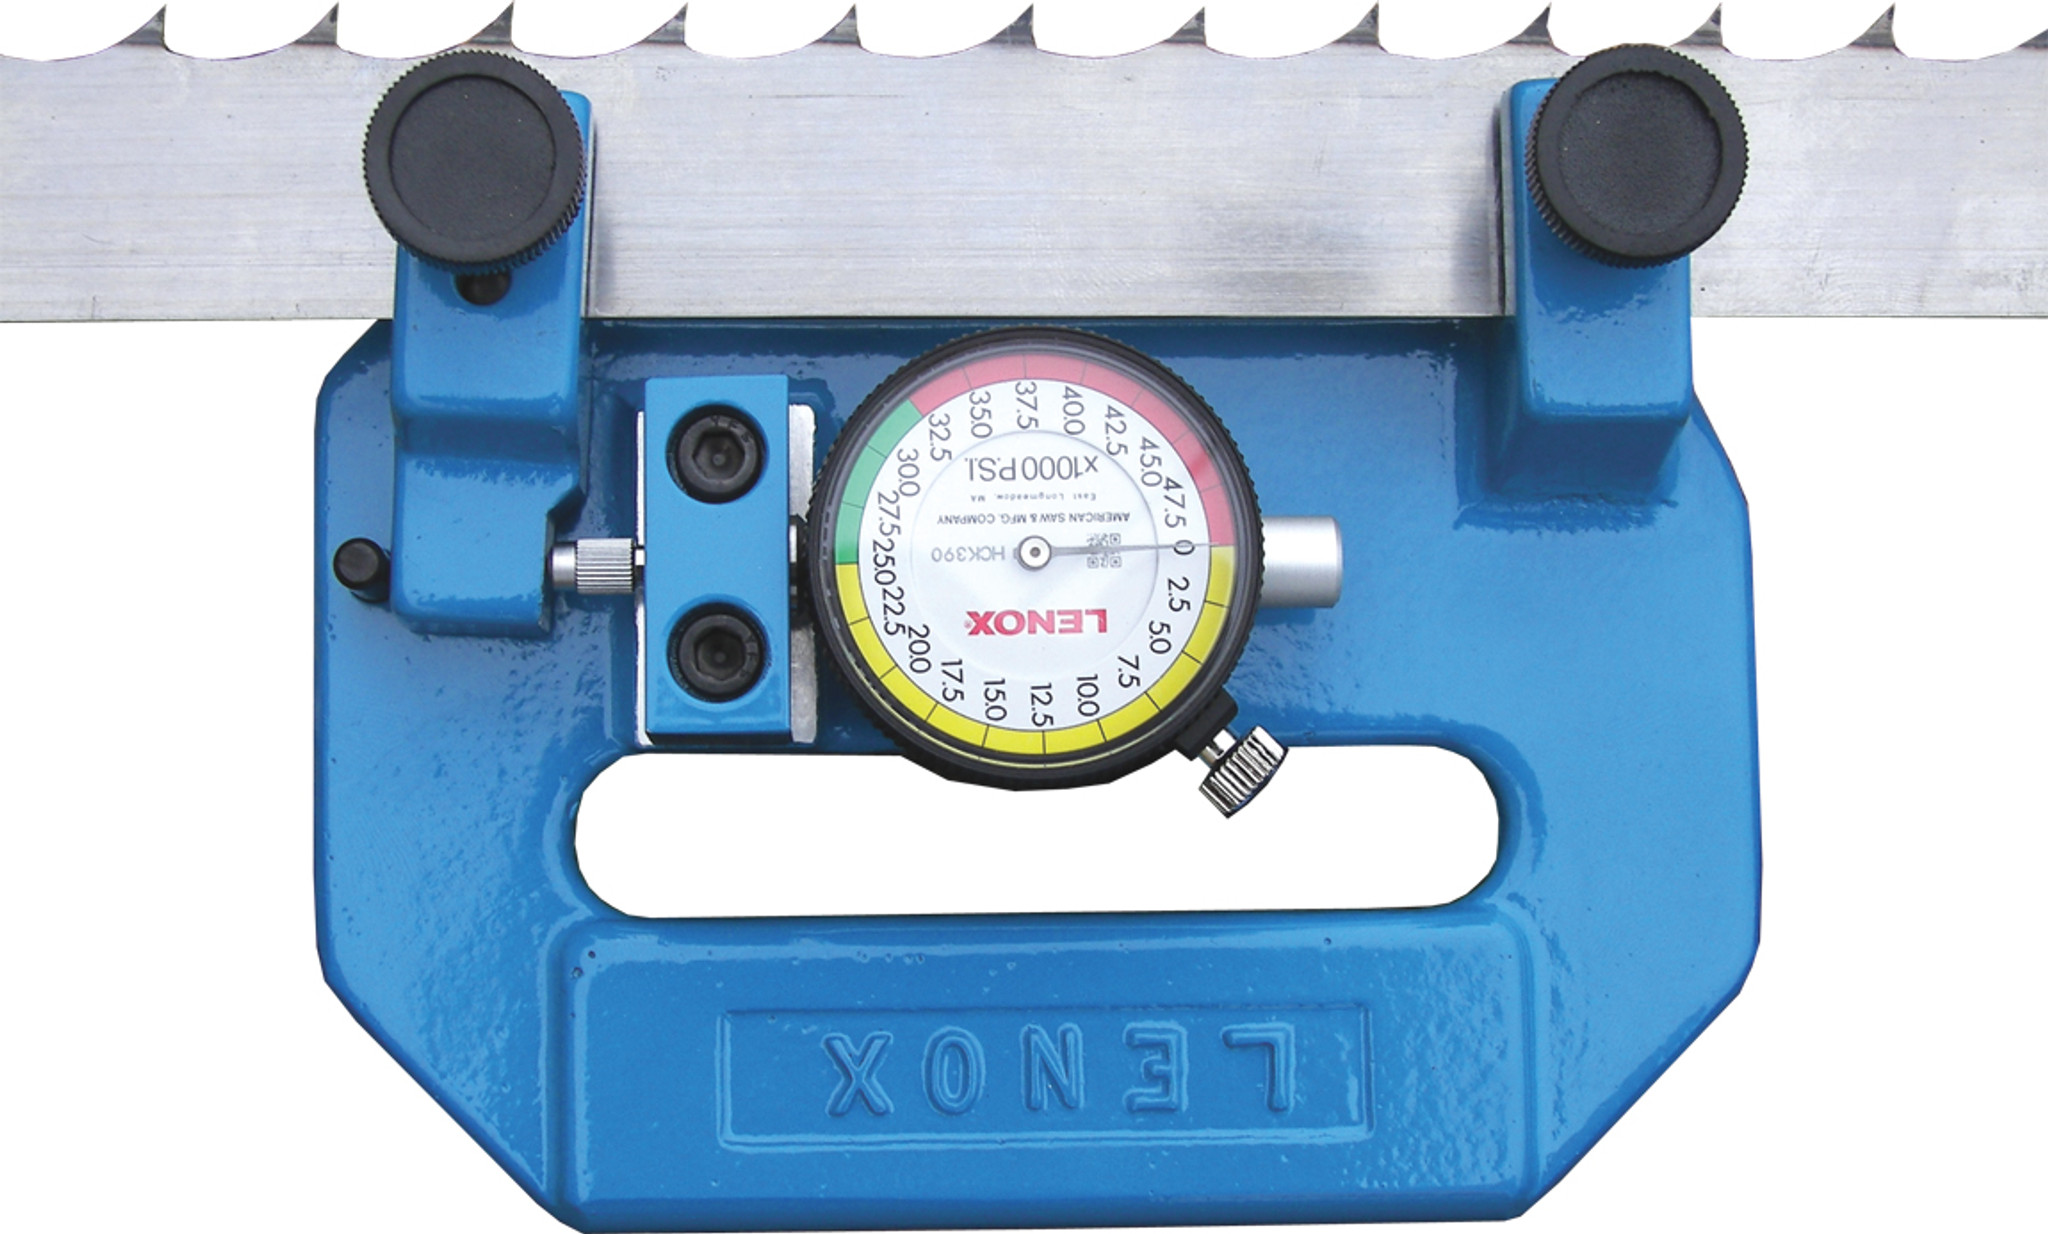 Bandsaw blade tensionmeter from cooks saw tensionmeter check bandsaw blade tension keyboard keysfo Image collections